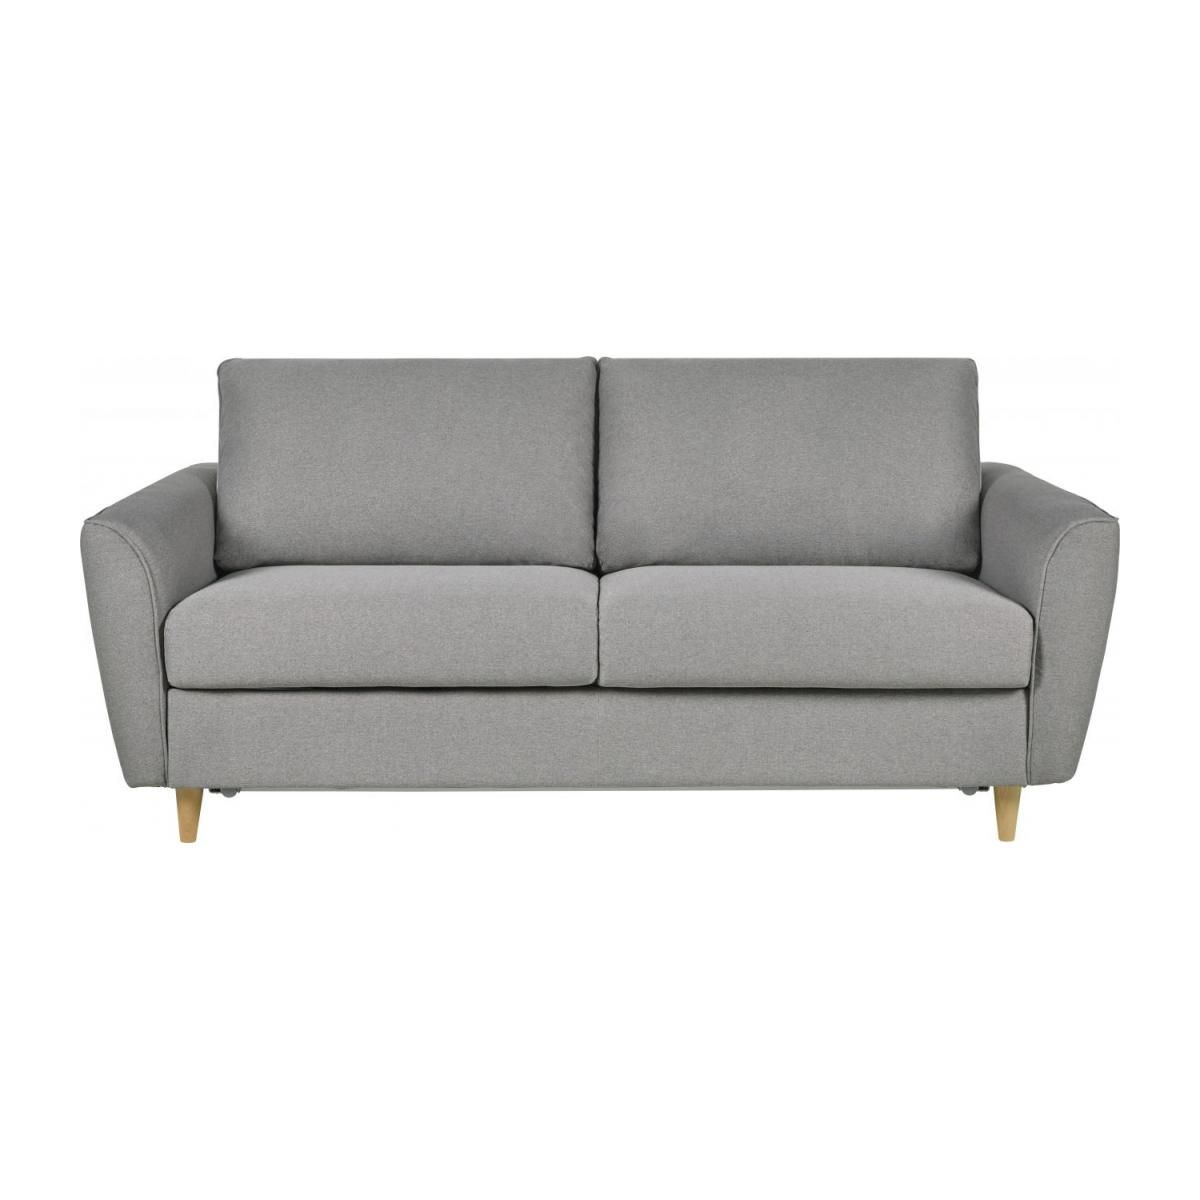 3 seater Fabric Sofa Bed Light Grey n°4